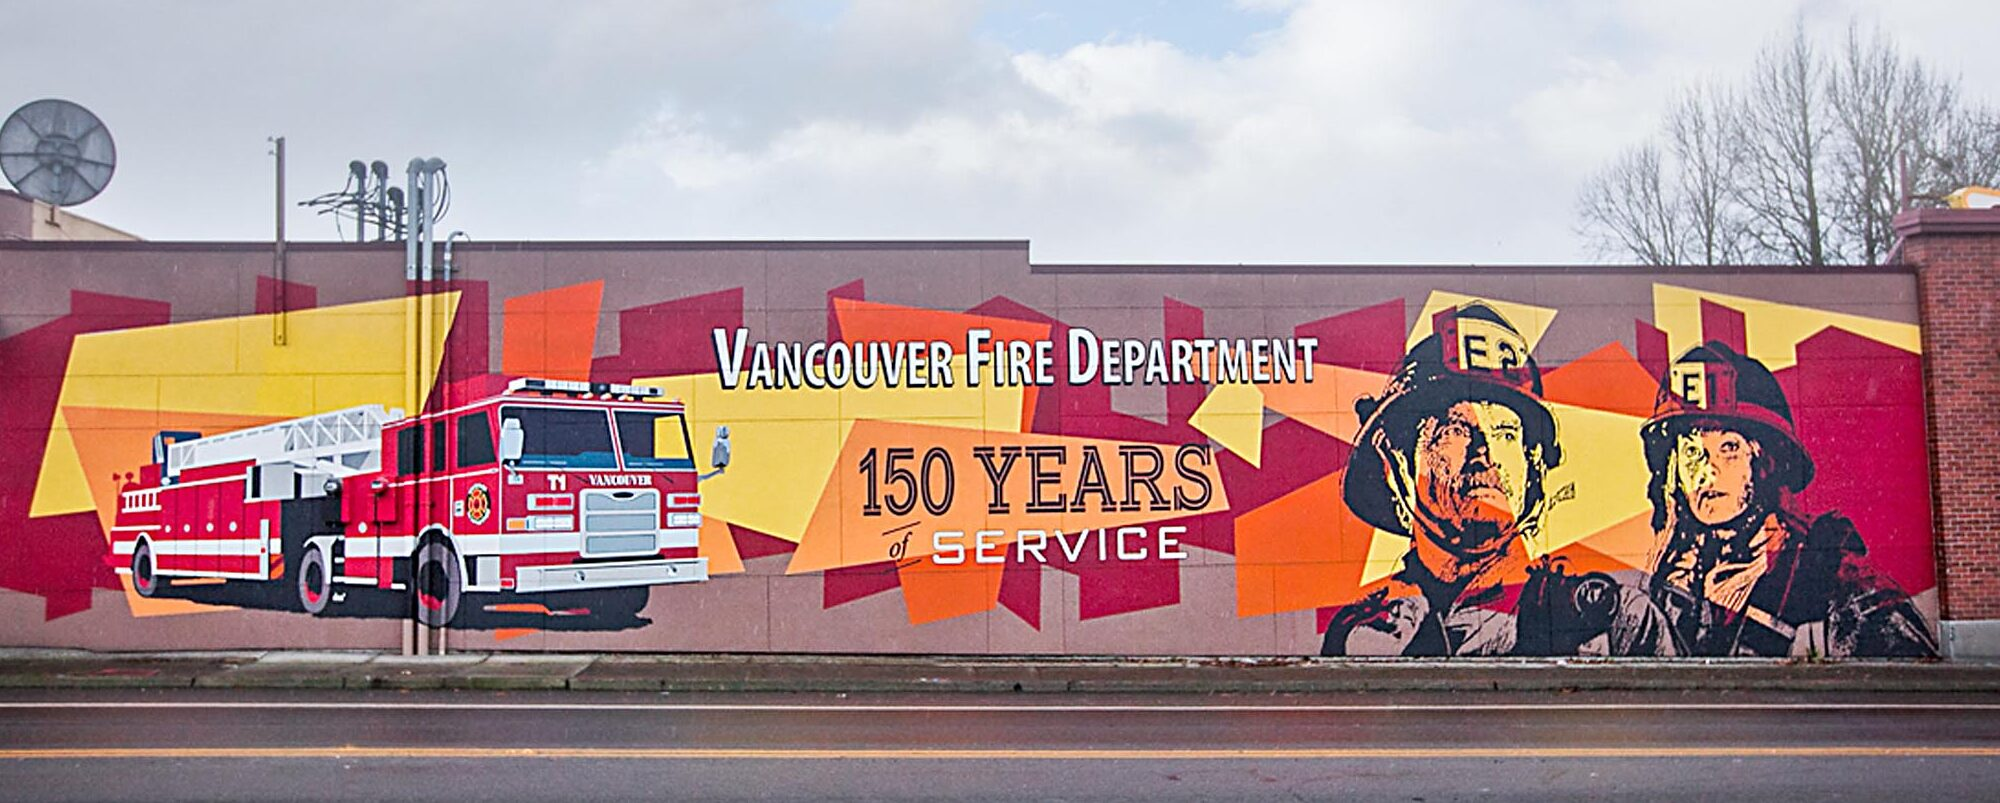 fire department images